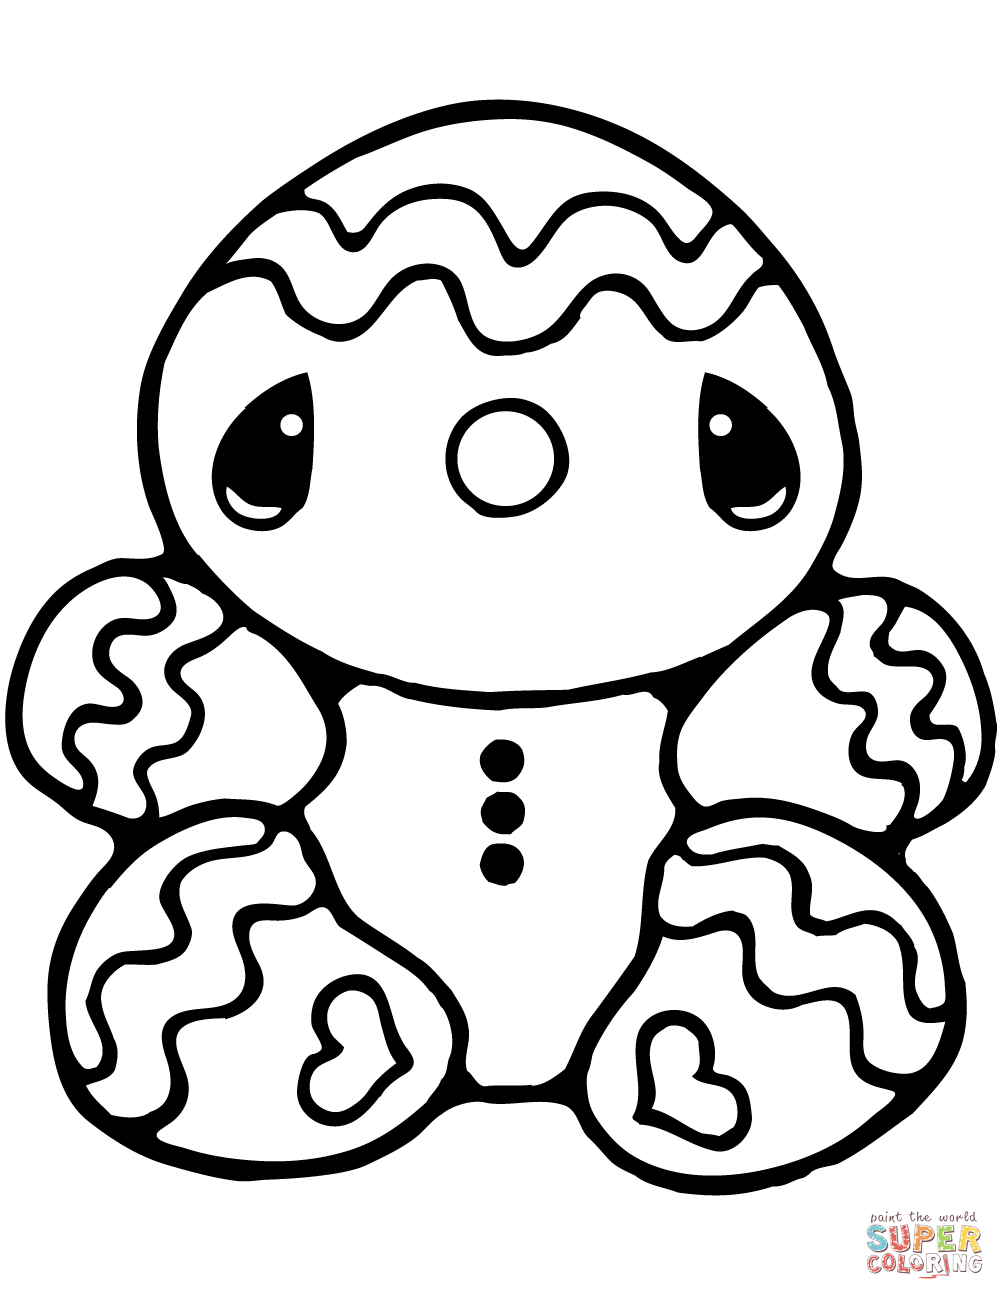 Tiny Gingerbread Man coloring page | Free Printable ...